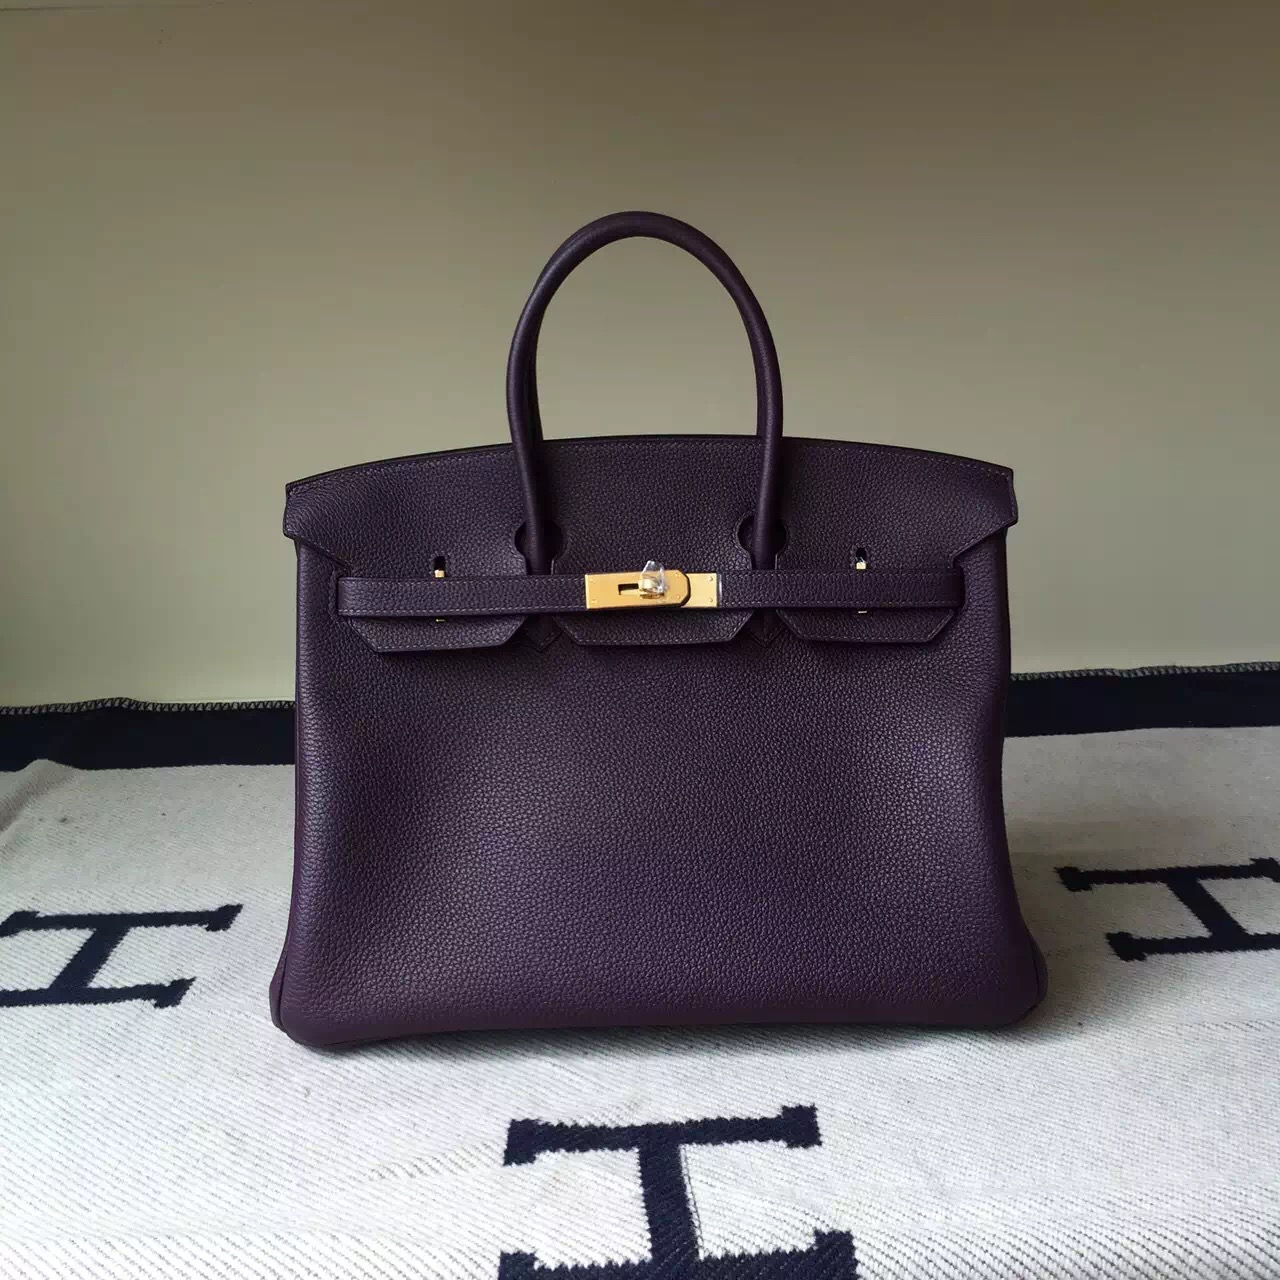 Wholesale Hermes African Purple Togo Calfskin Leather Birkin35cm